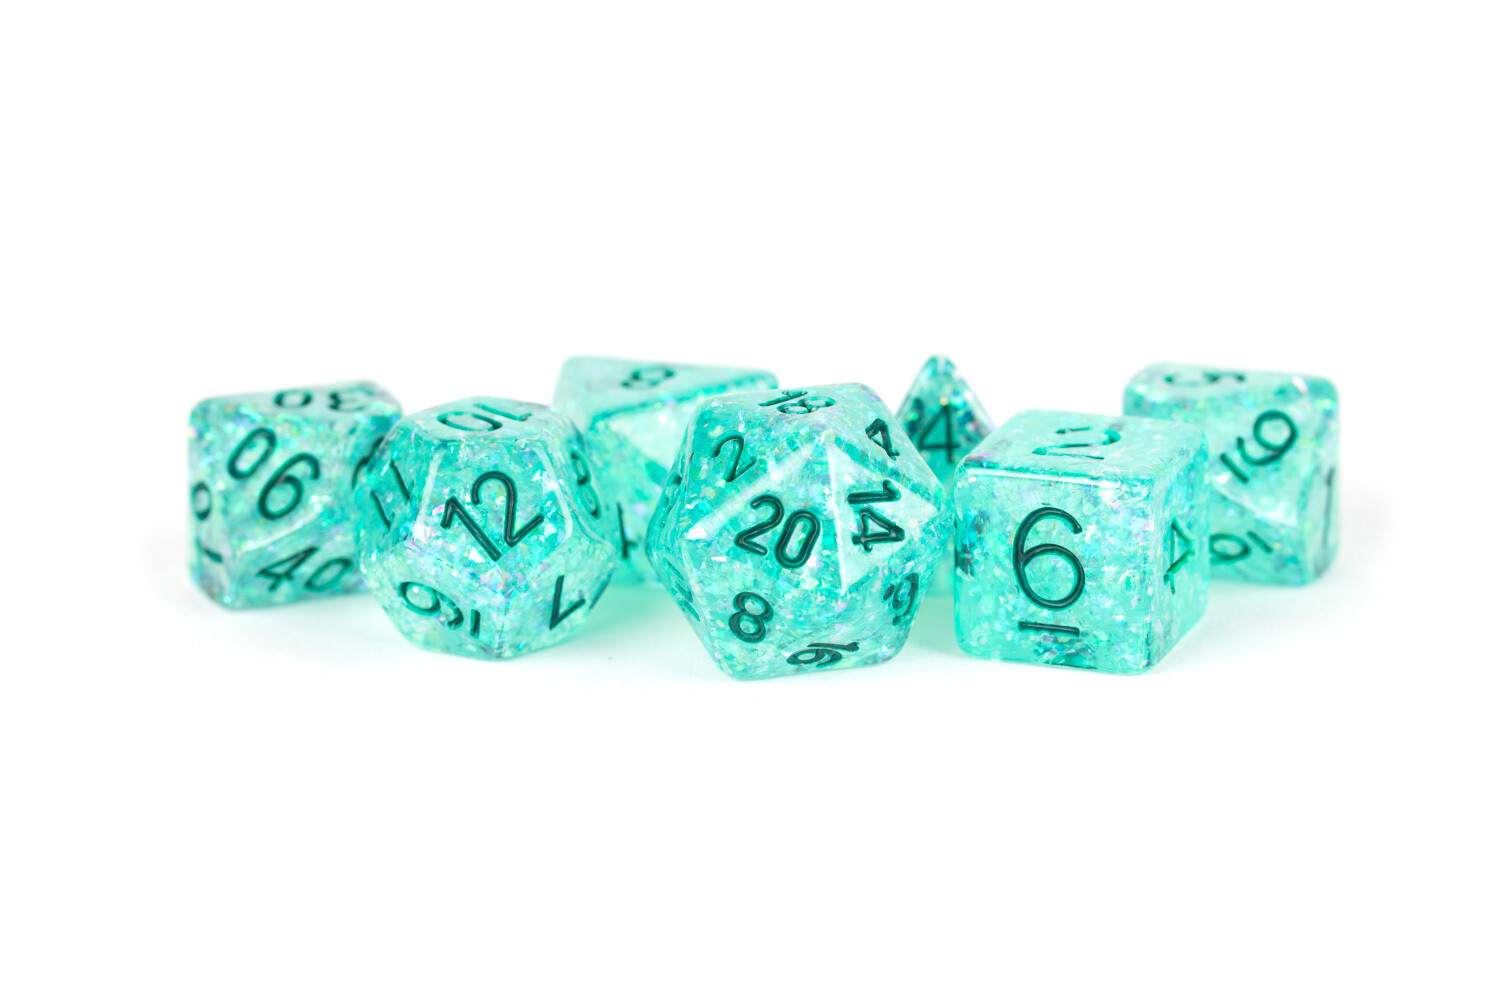 16mm Resin Flash Dice Poly Dice Set: Teal